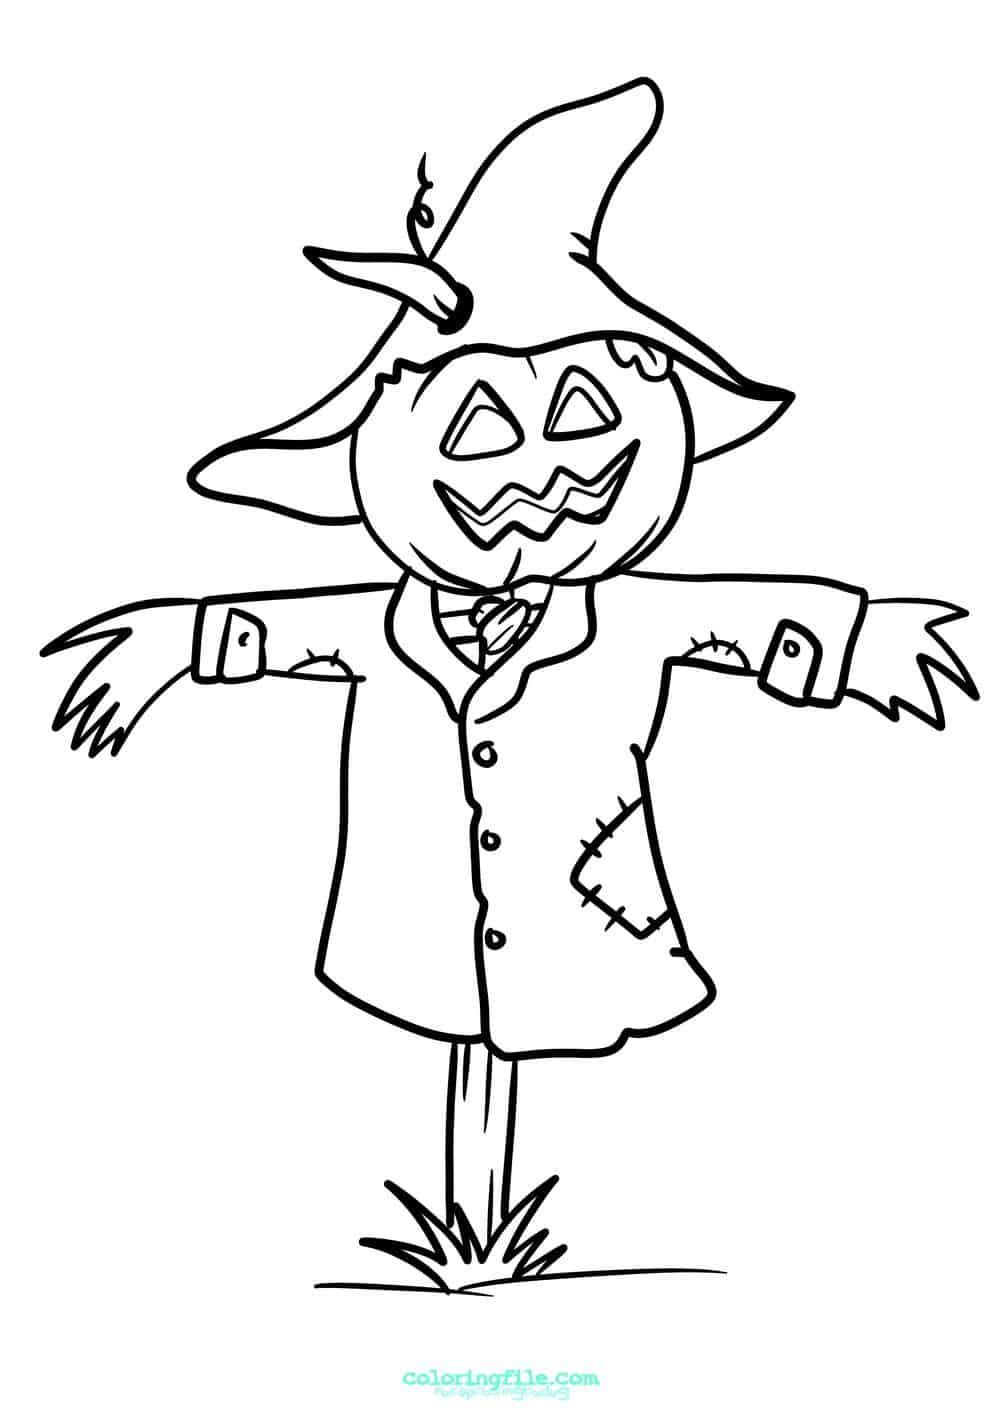 Lego Scarecrow Coloring Pages   Monaicyn Kitchen Ideas